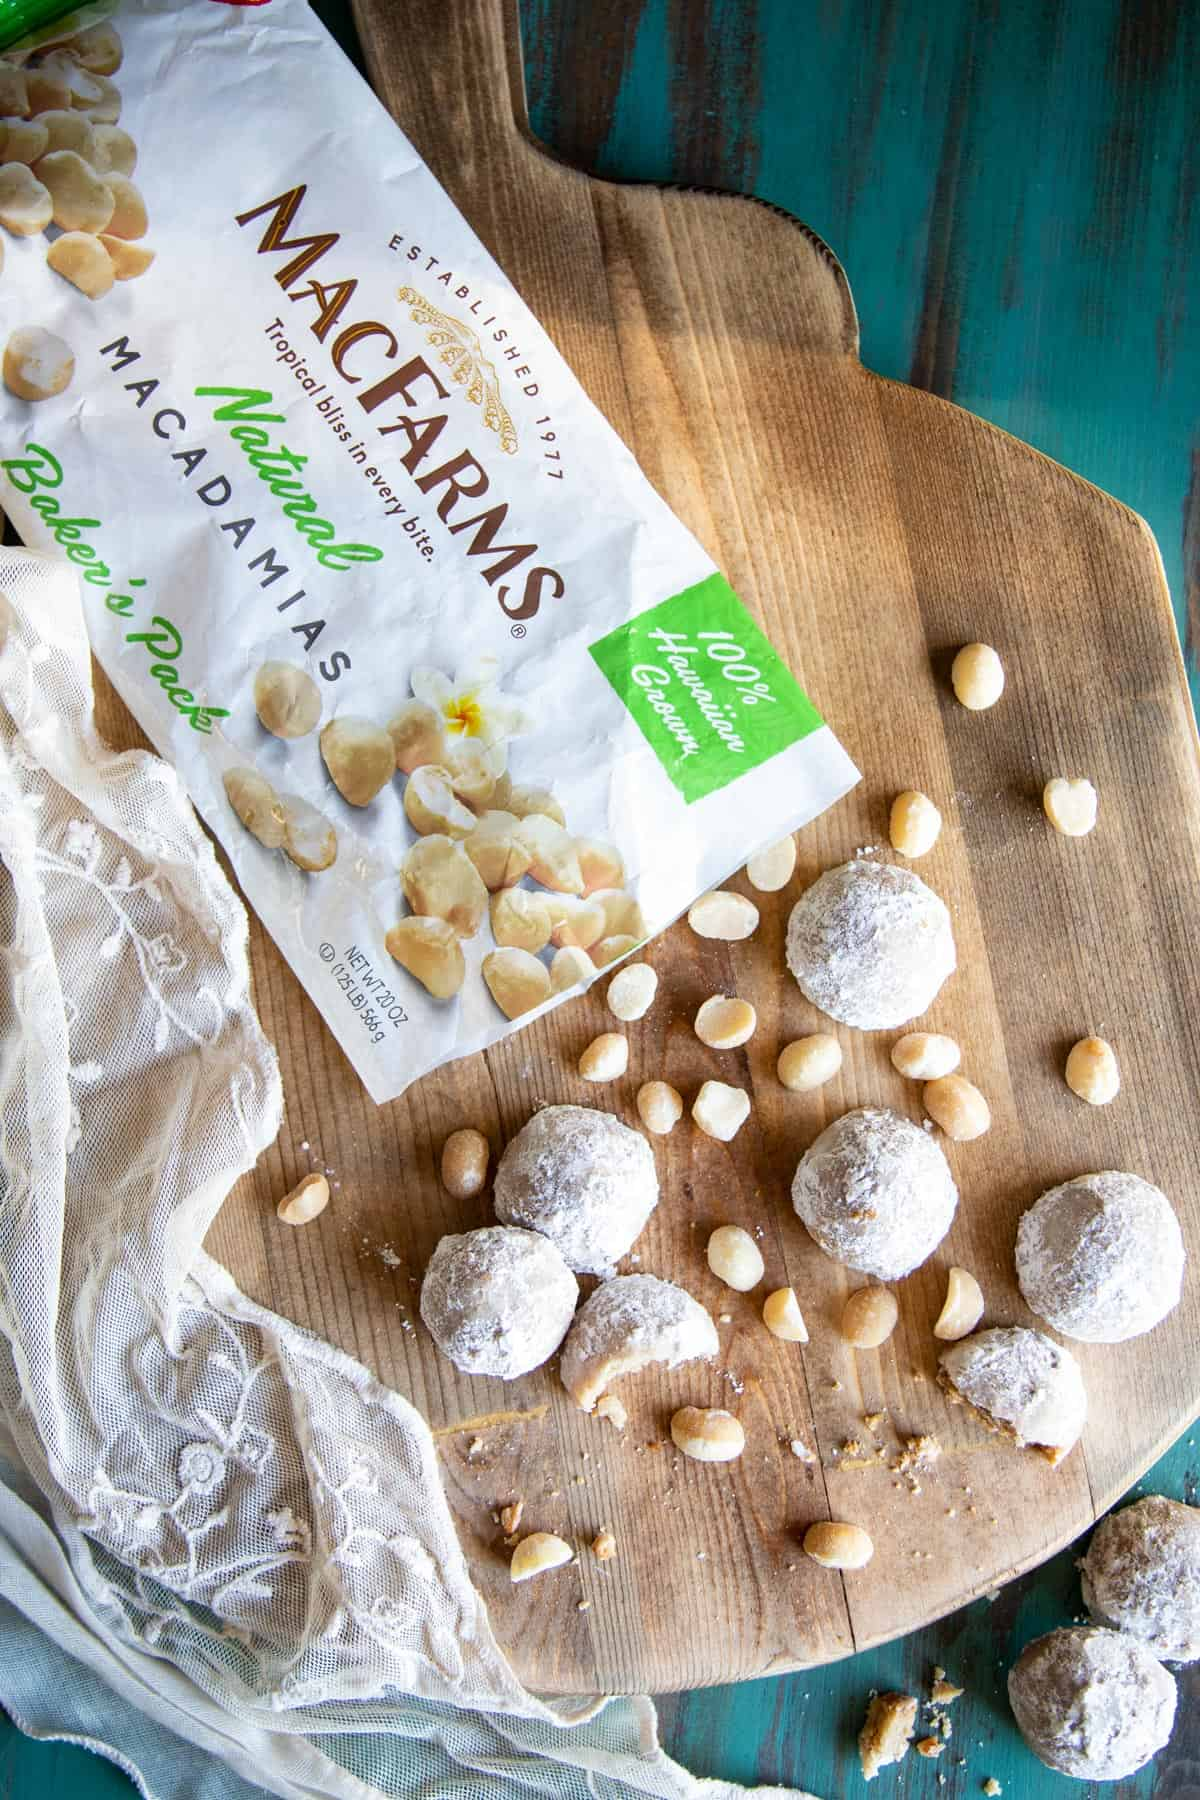 Snowball cookies and macadamia nuts on a wooden board